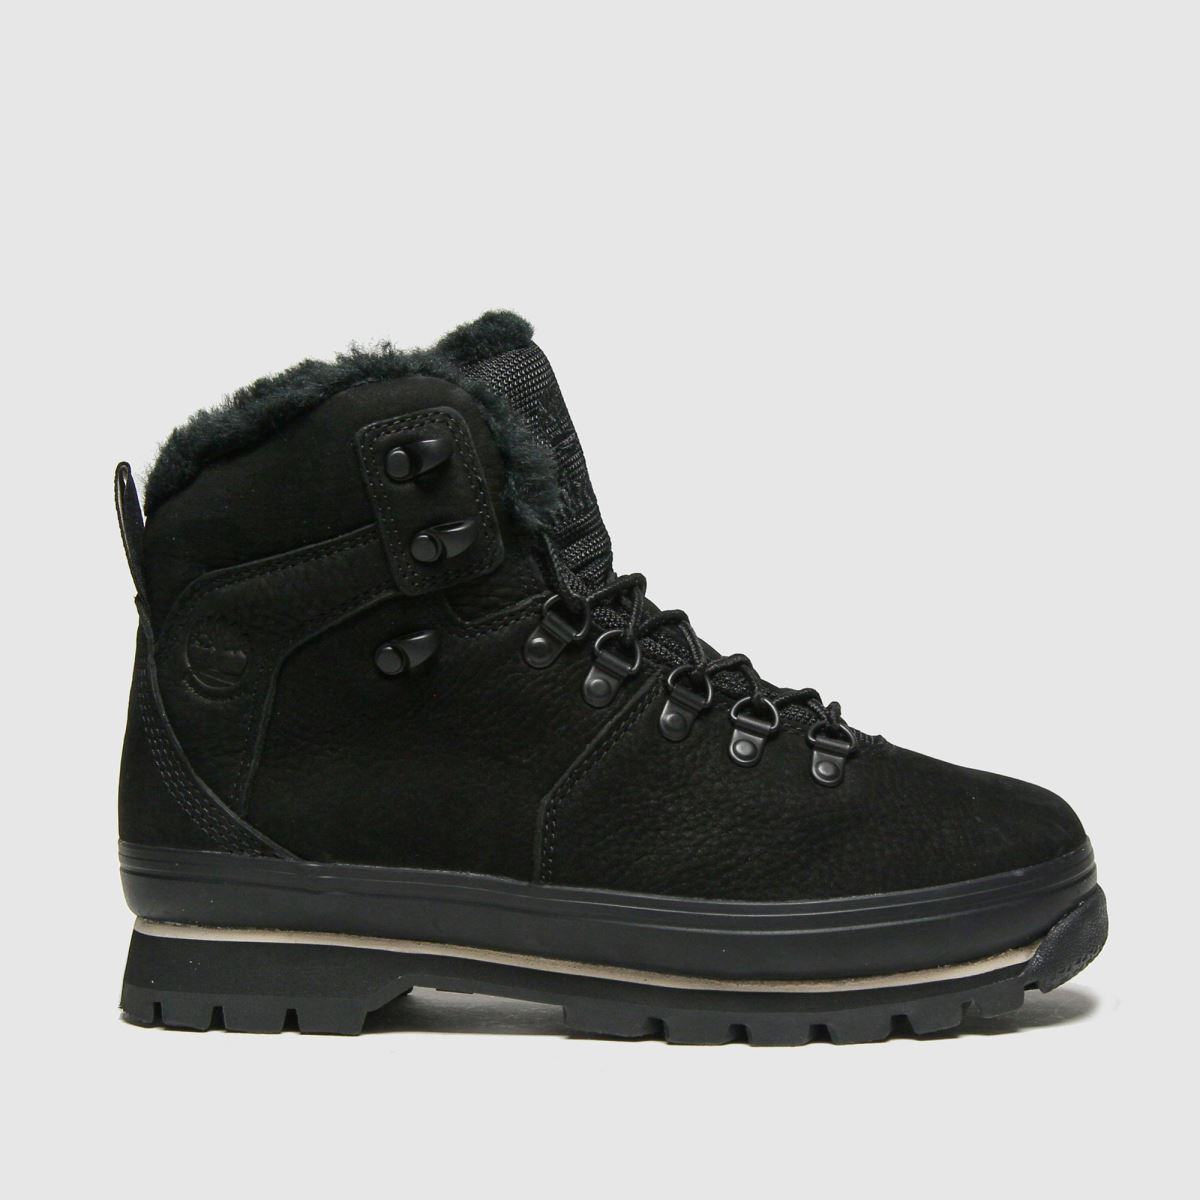 Timberland Black Euro Hiker Warm Lined Boots